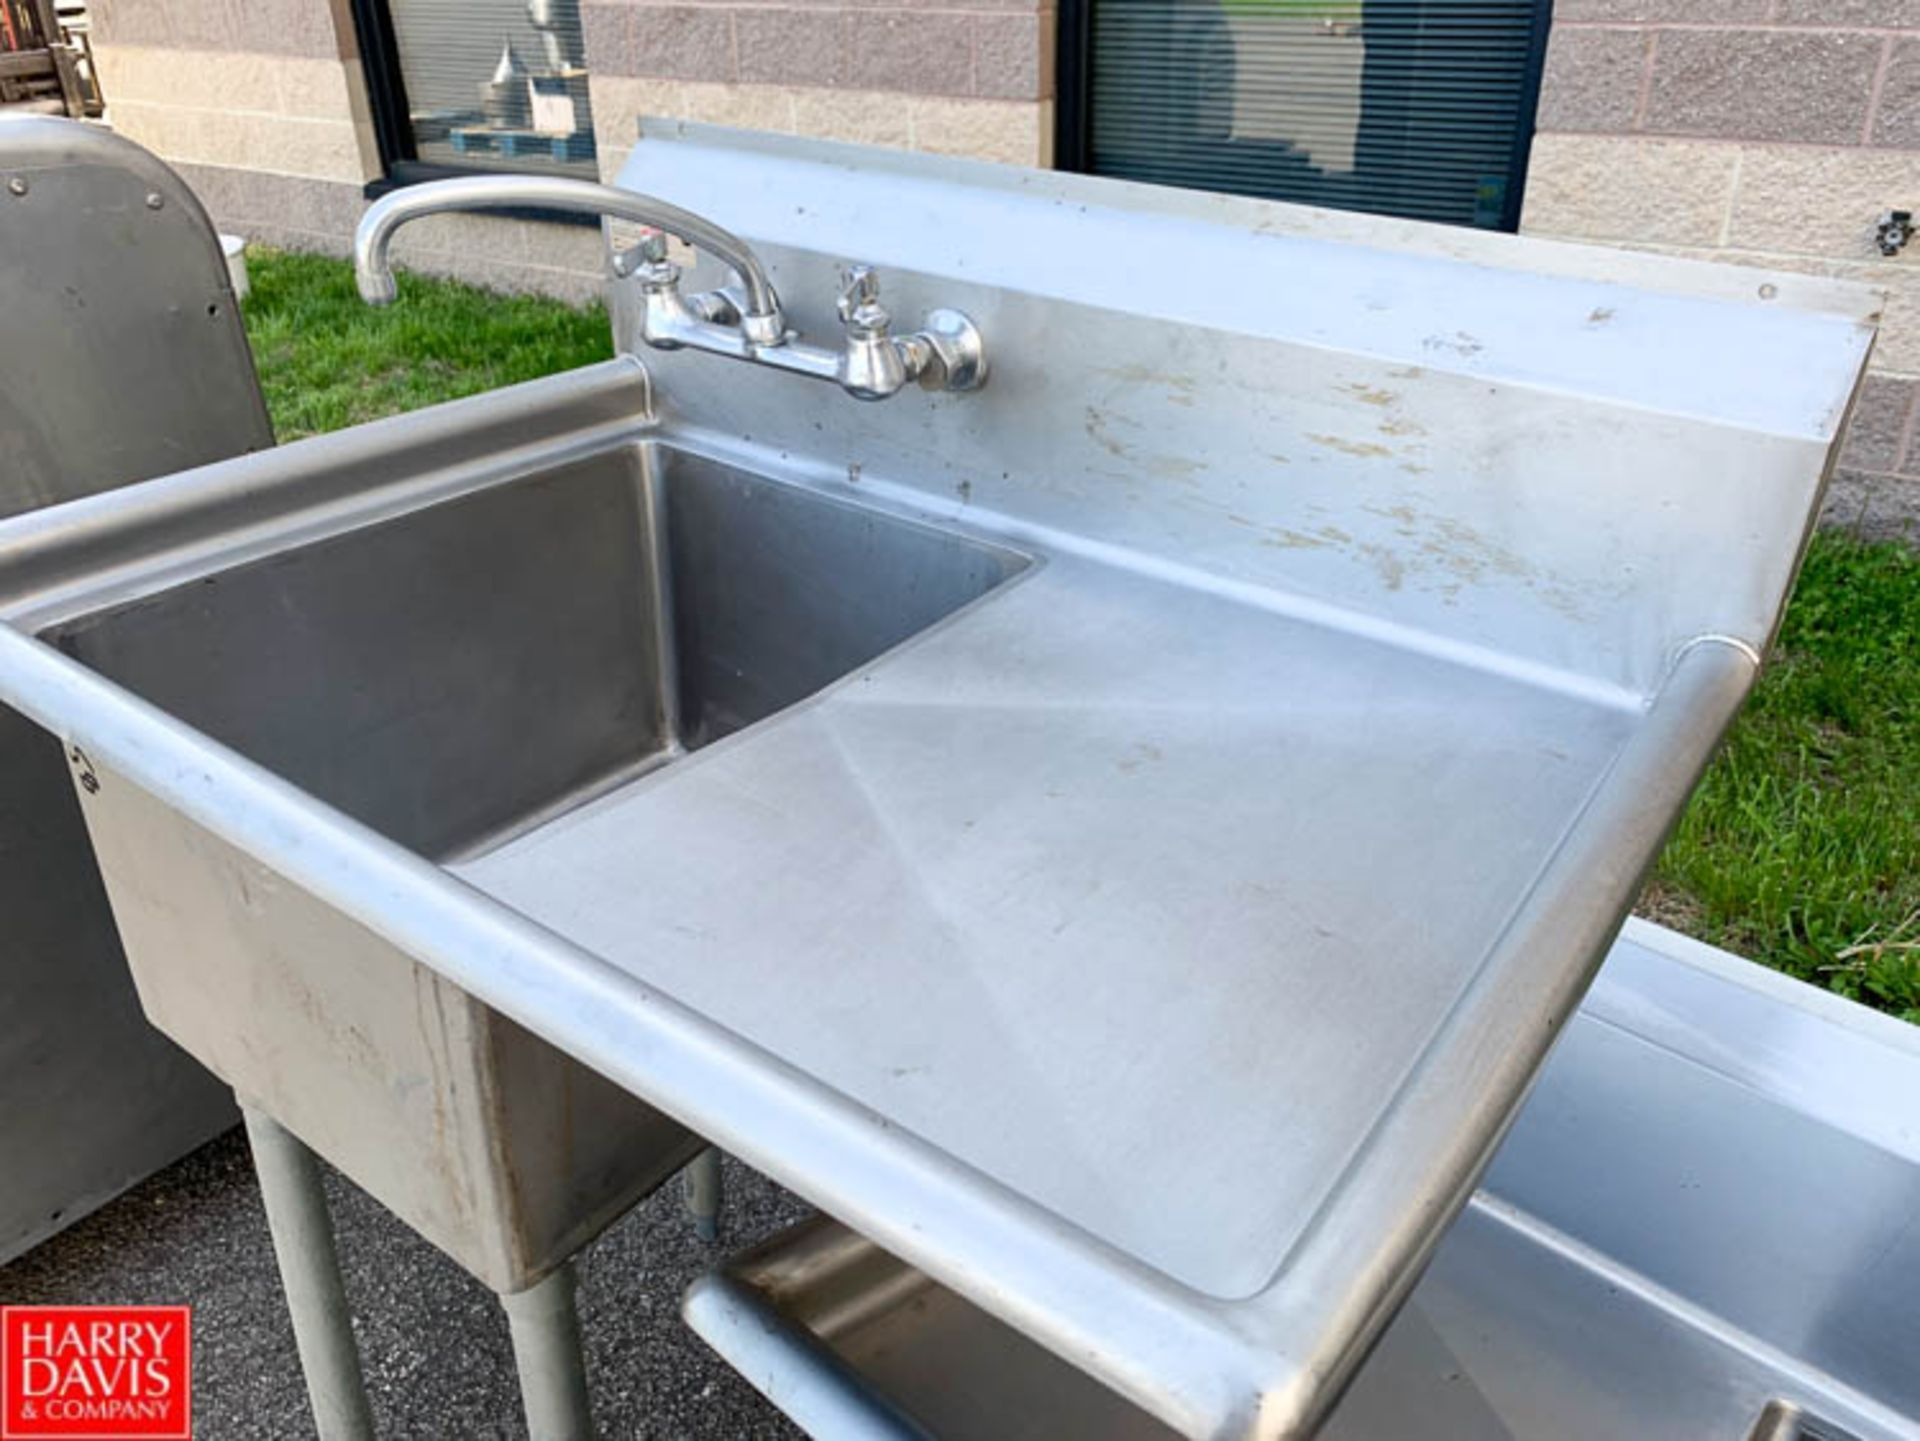 Lot 58 - Elkay S/S Single Bowl Sink with Rounded Edges and Back Splash - Rigging Fee: $10